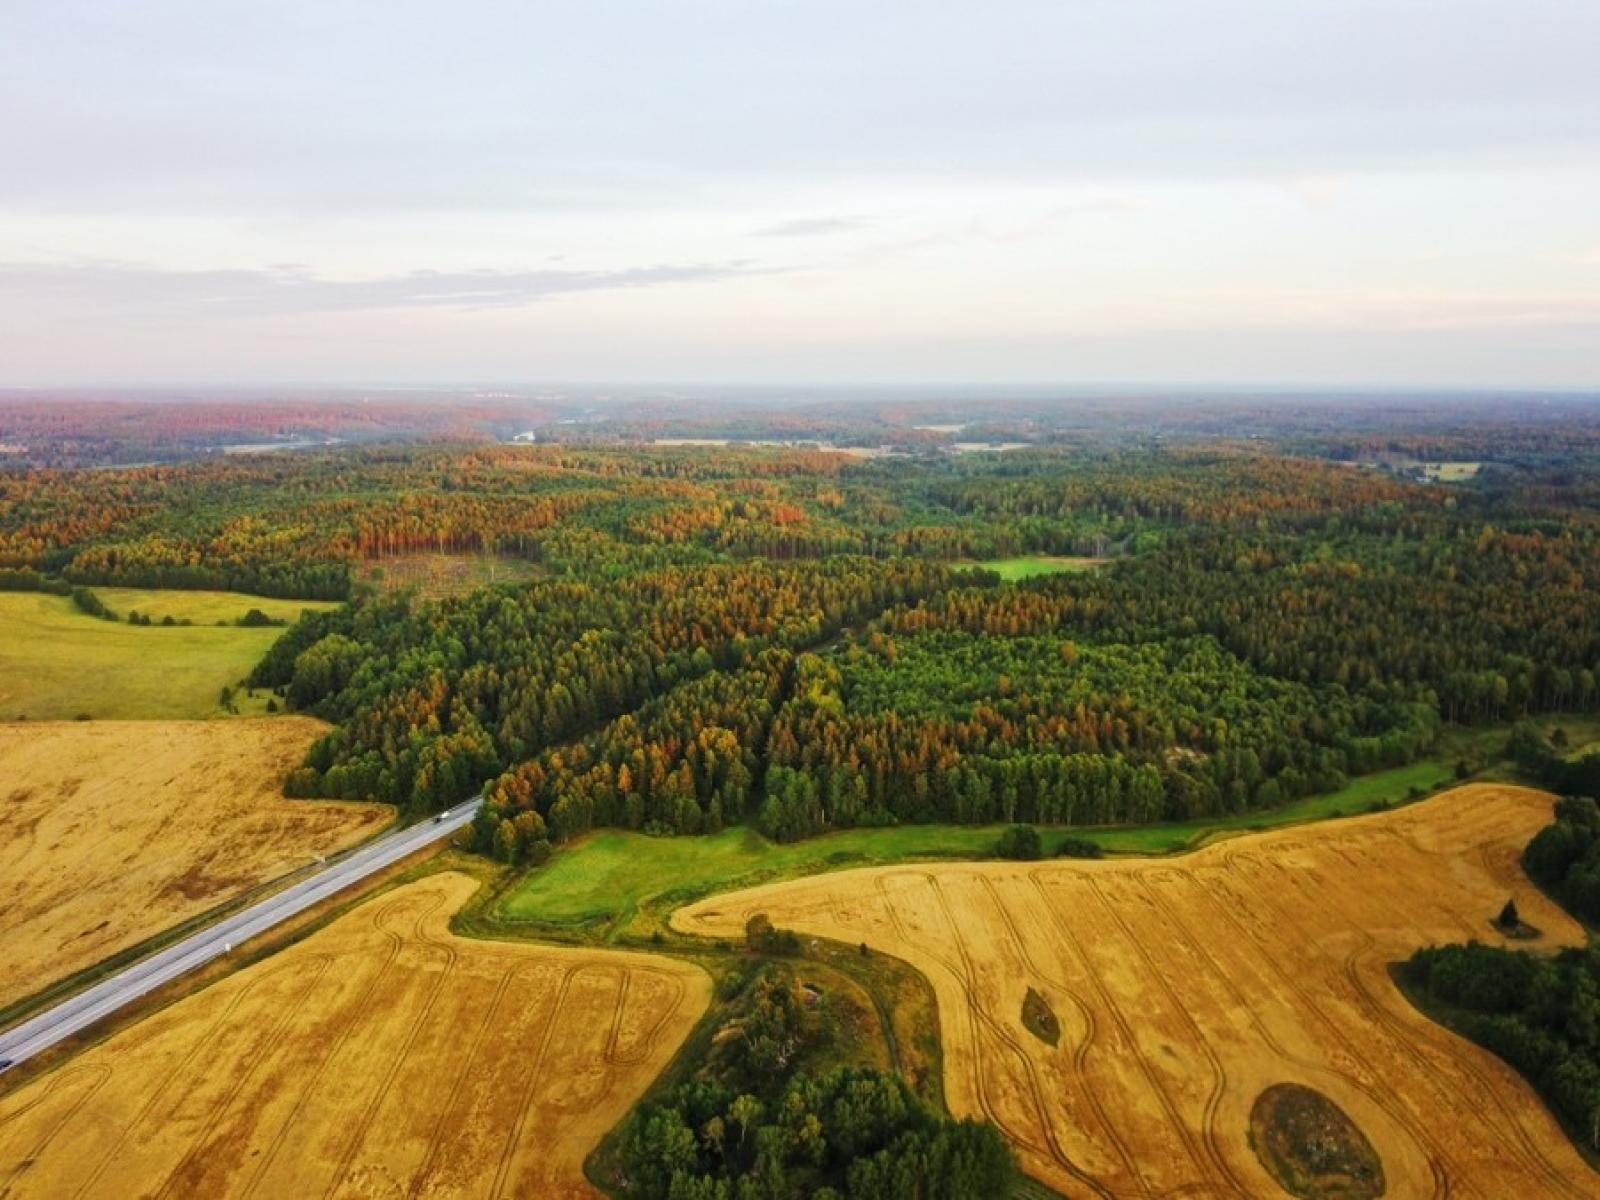 aerial view of a forest and crop land nearby